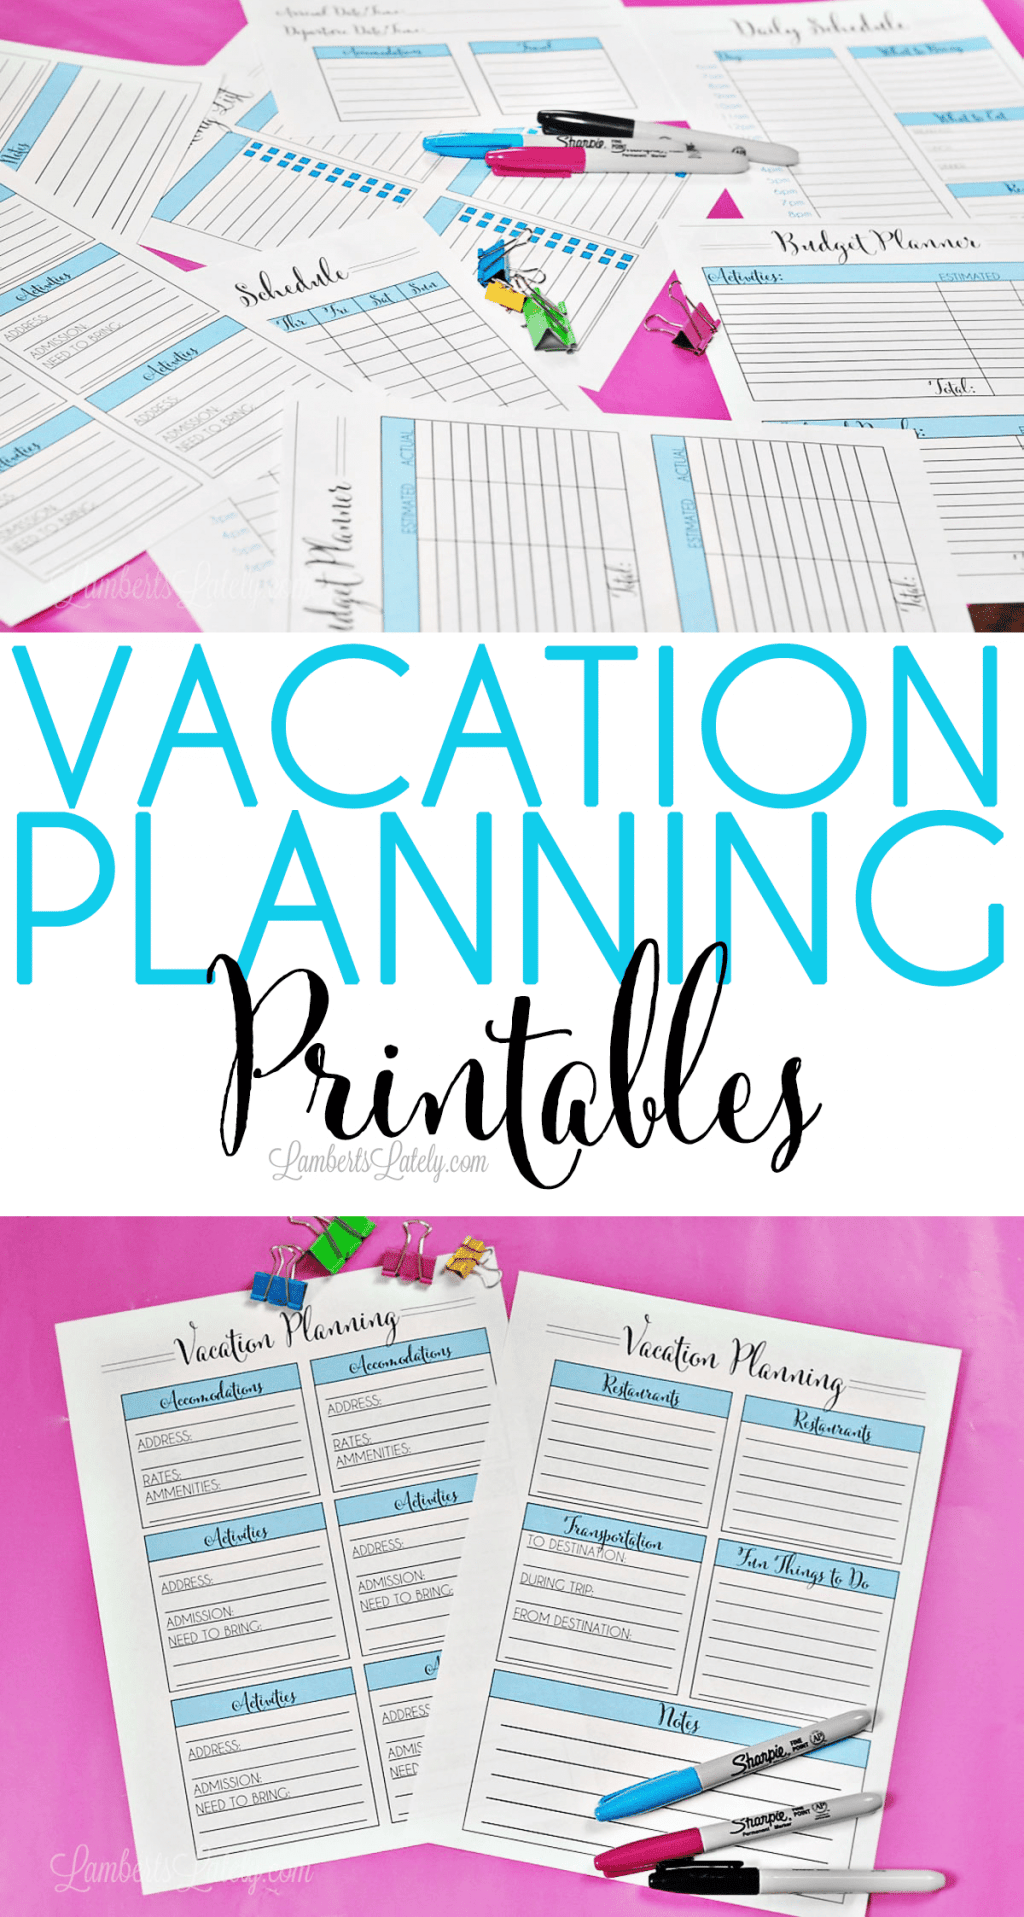 Love this set of free vacation planning printables! Organize your family trip with budget worksheets, packing checklists, and ways to organize places to visit & food ideas.